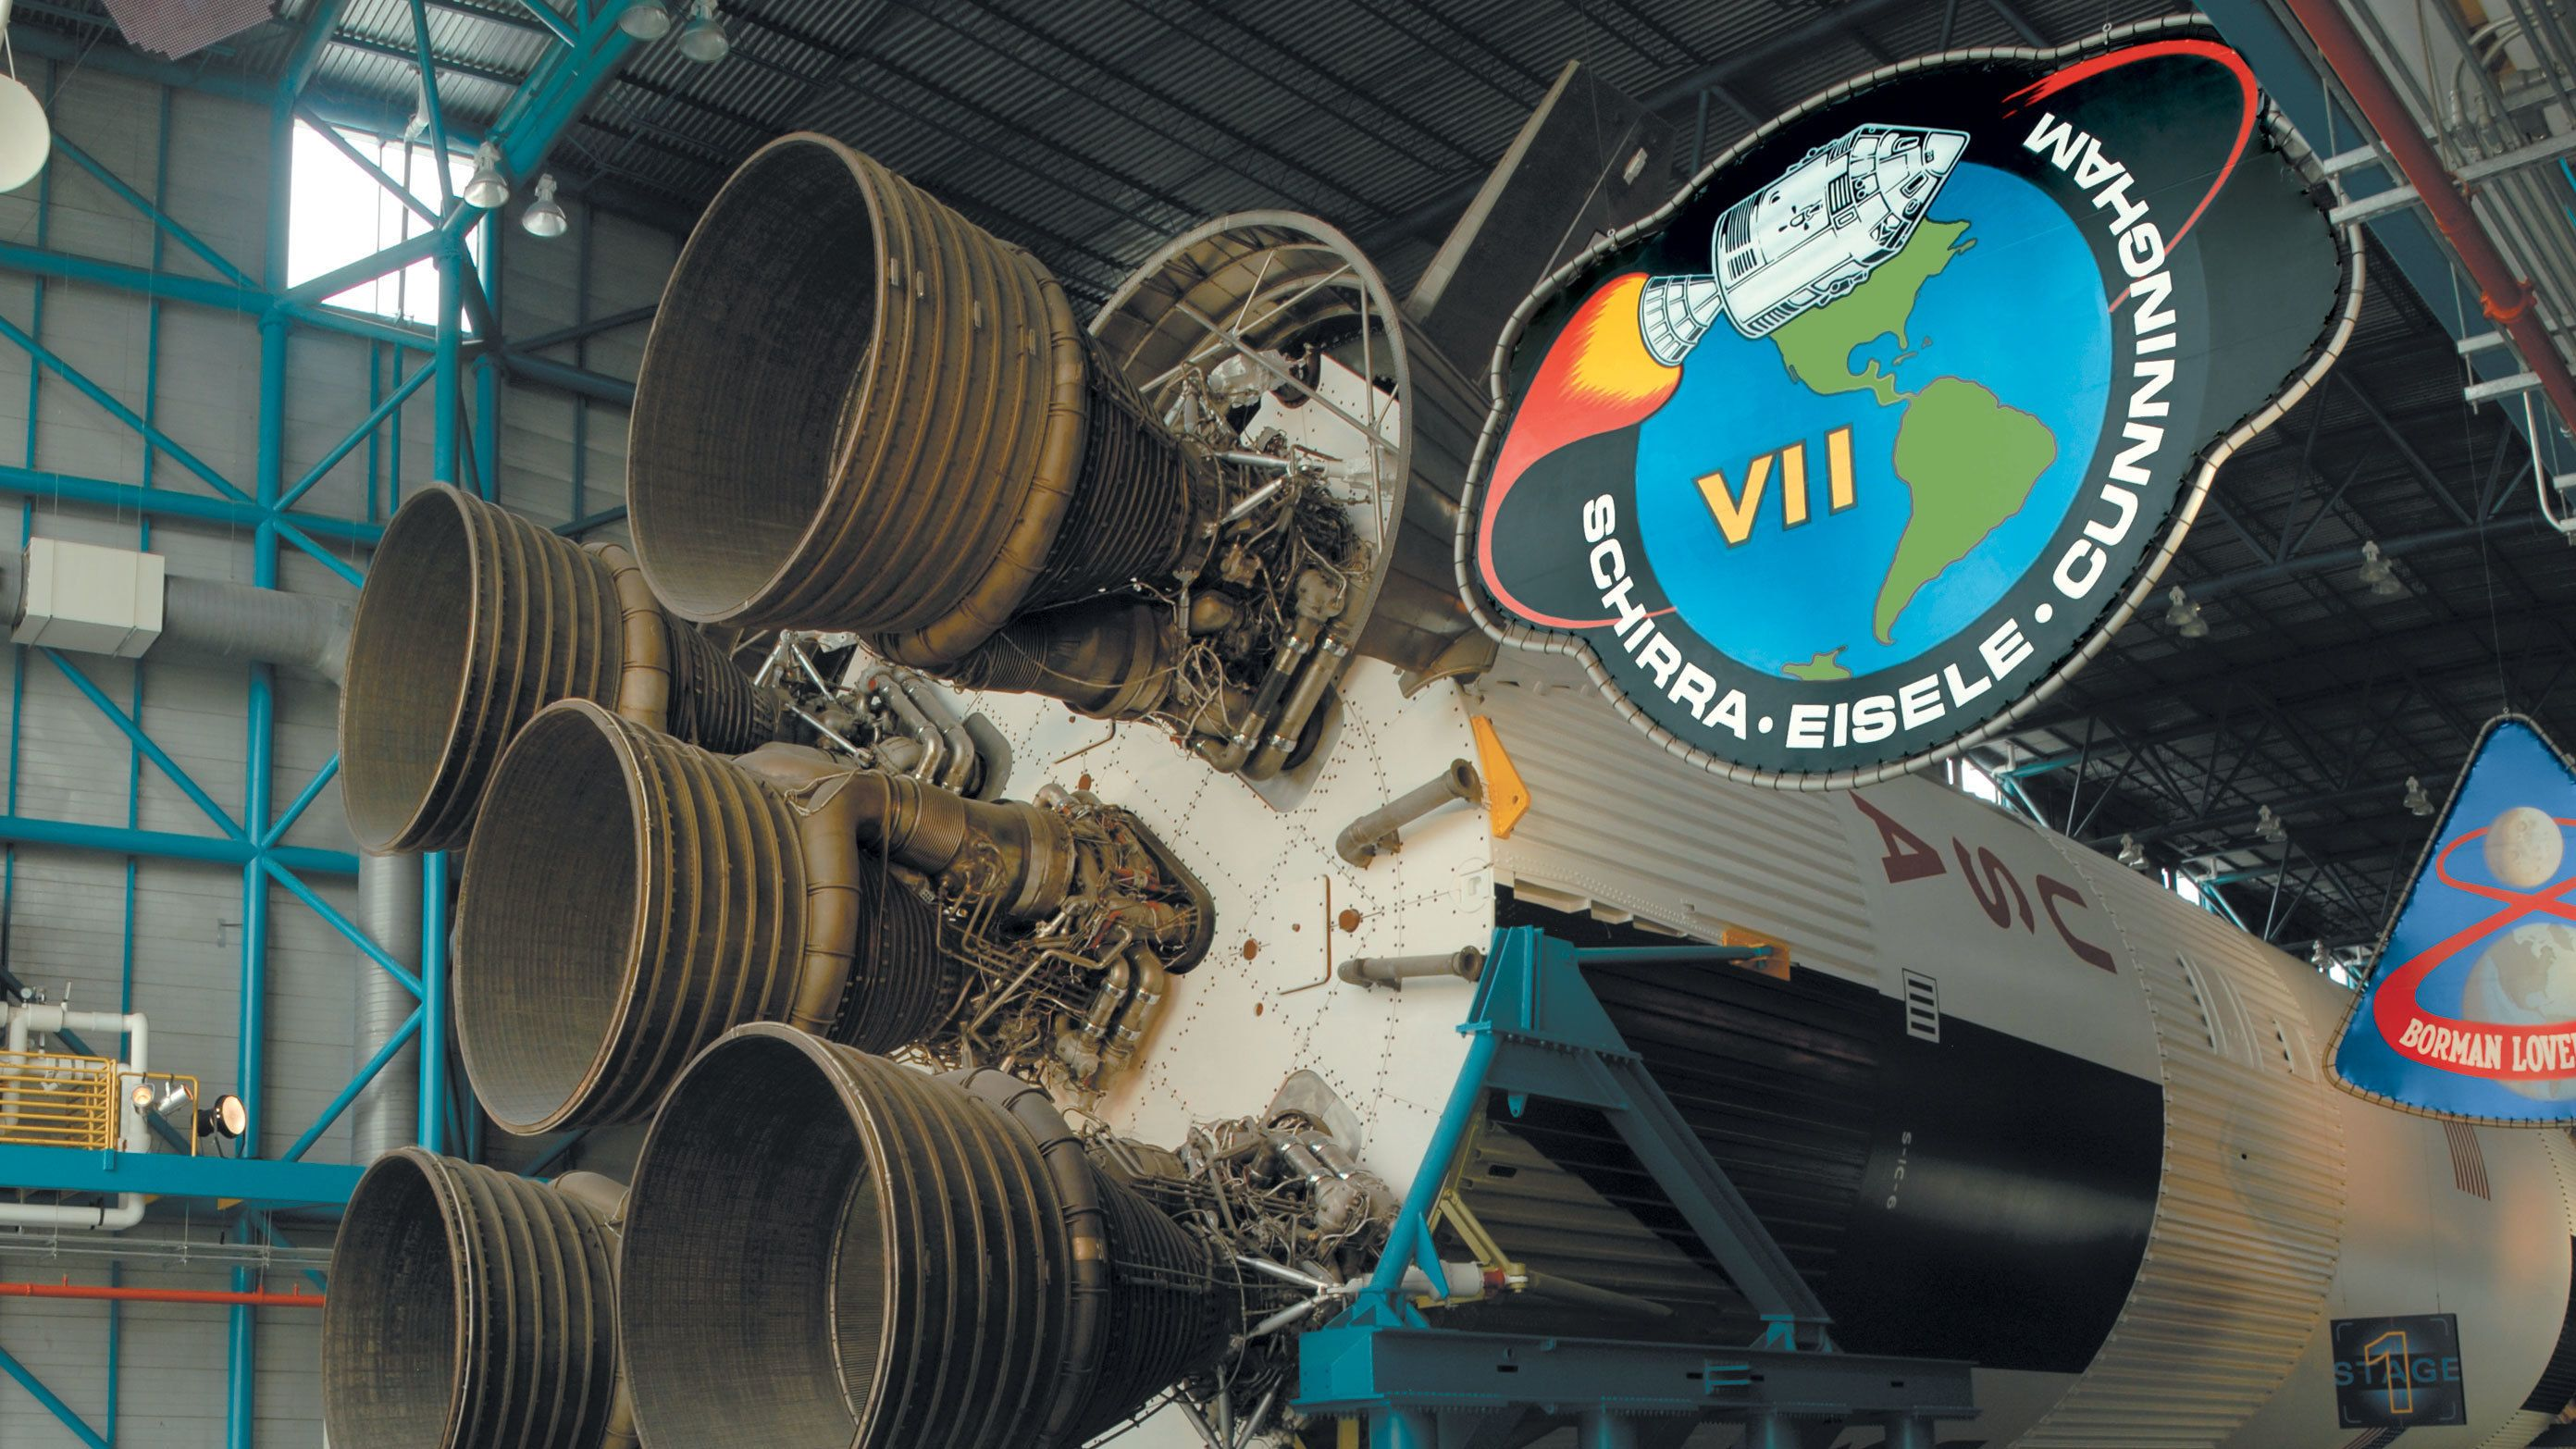 Rocket boosters exhibit at Kennedy Space Center in Orlando